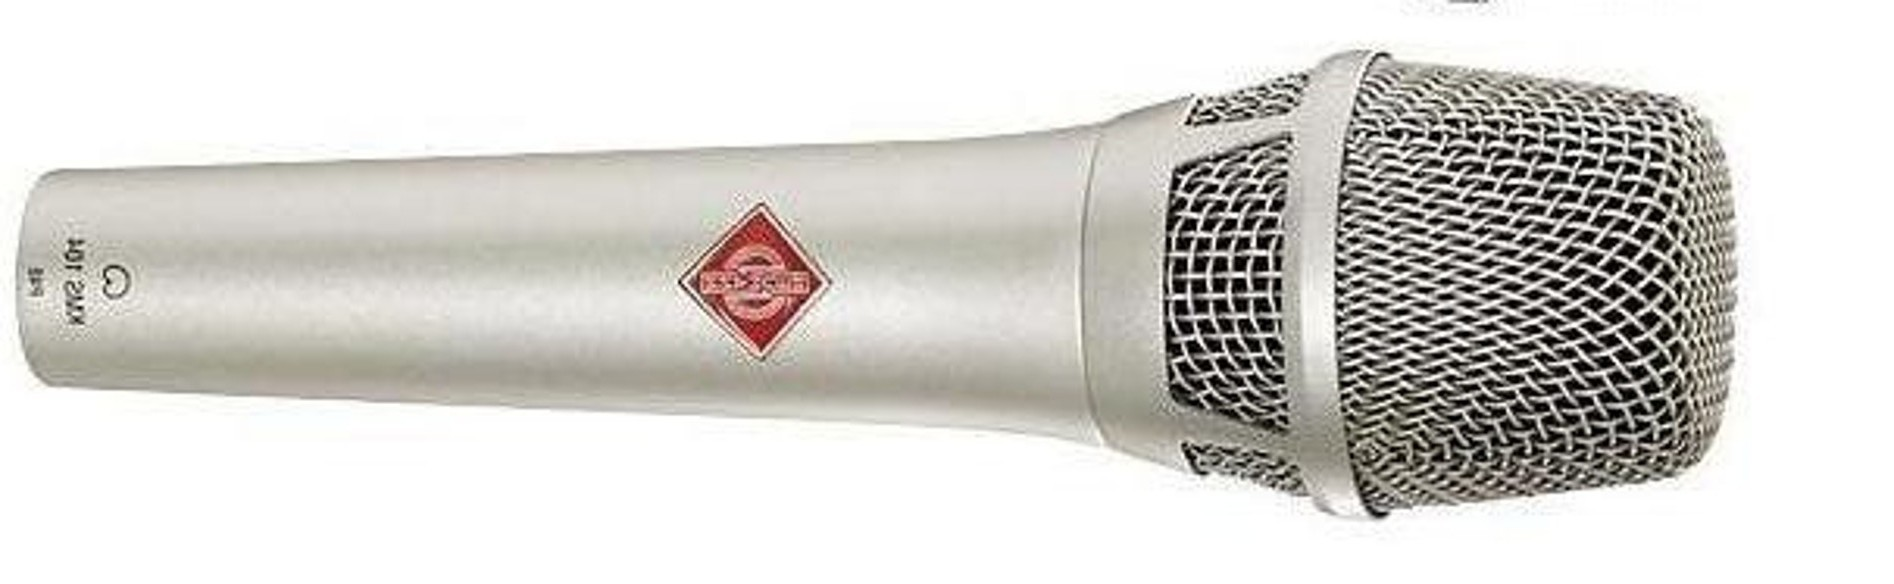 Neumann KMS 105 NI [Nickel]